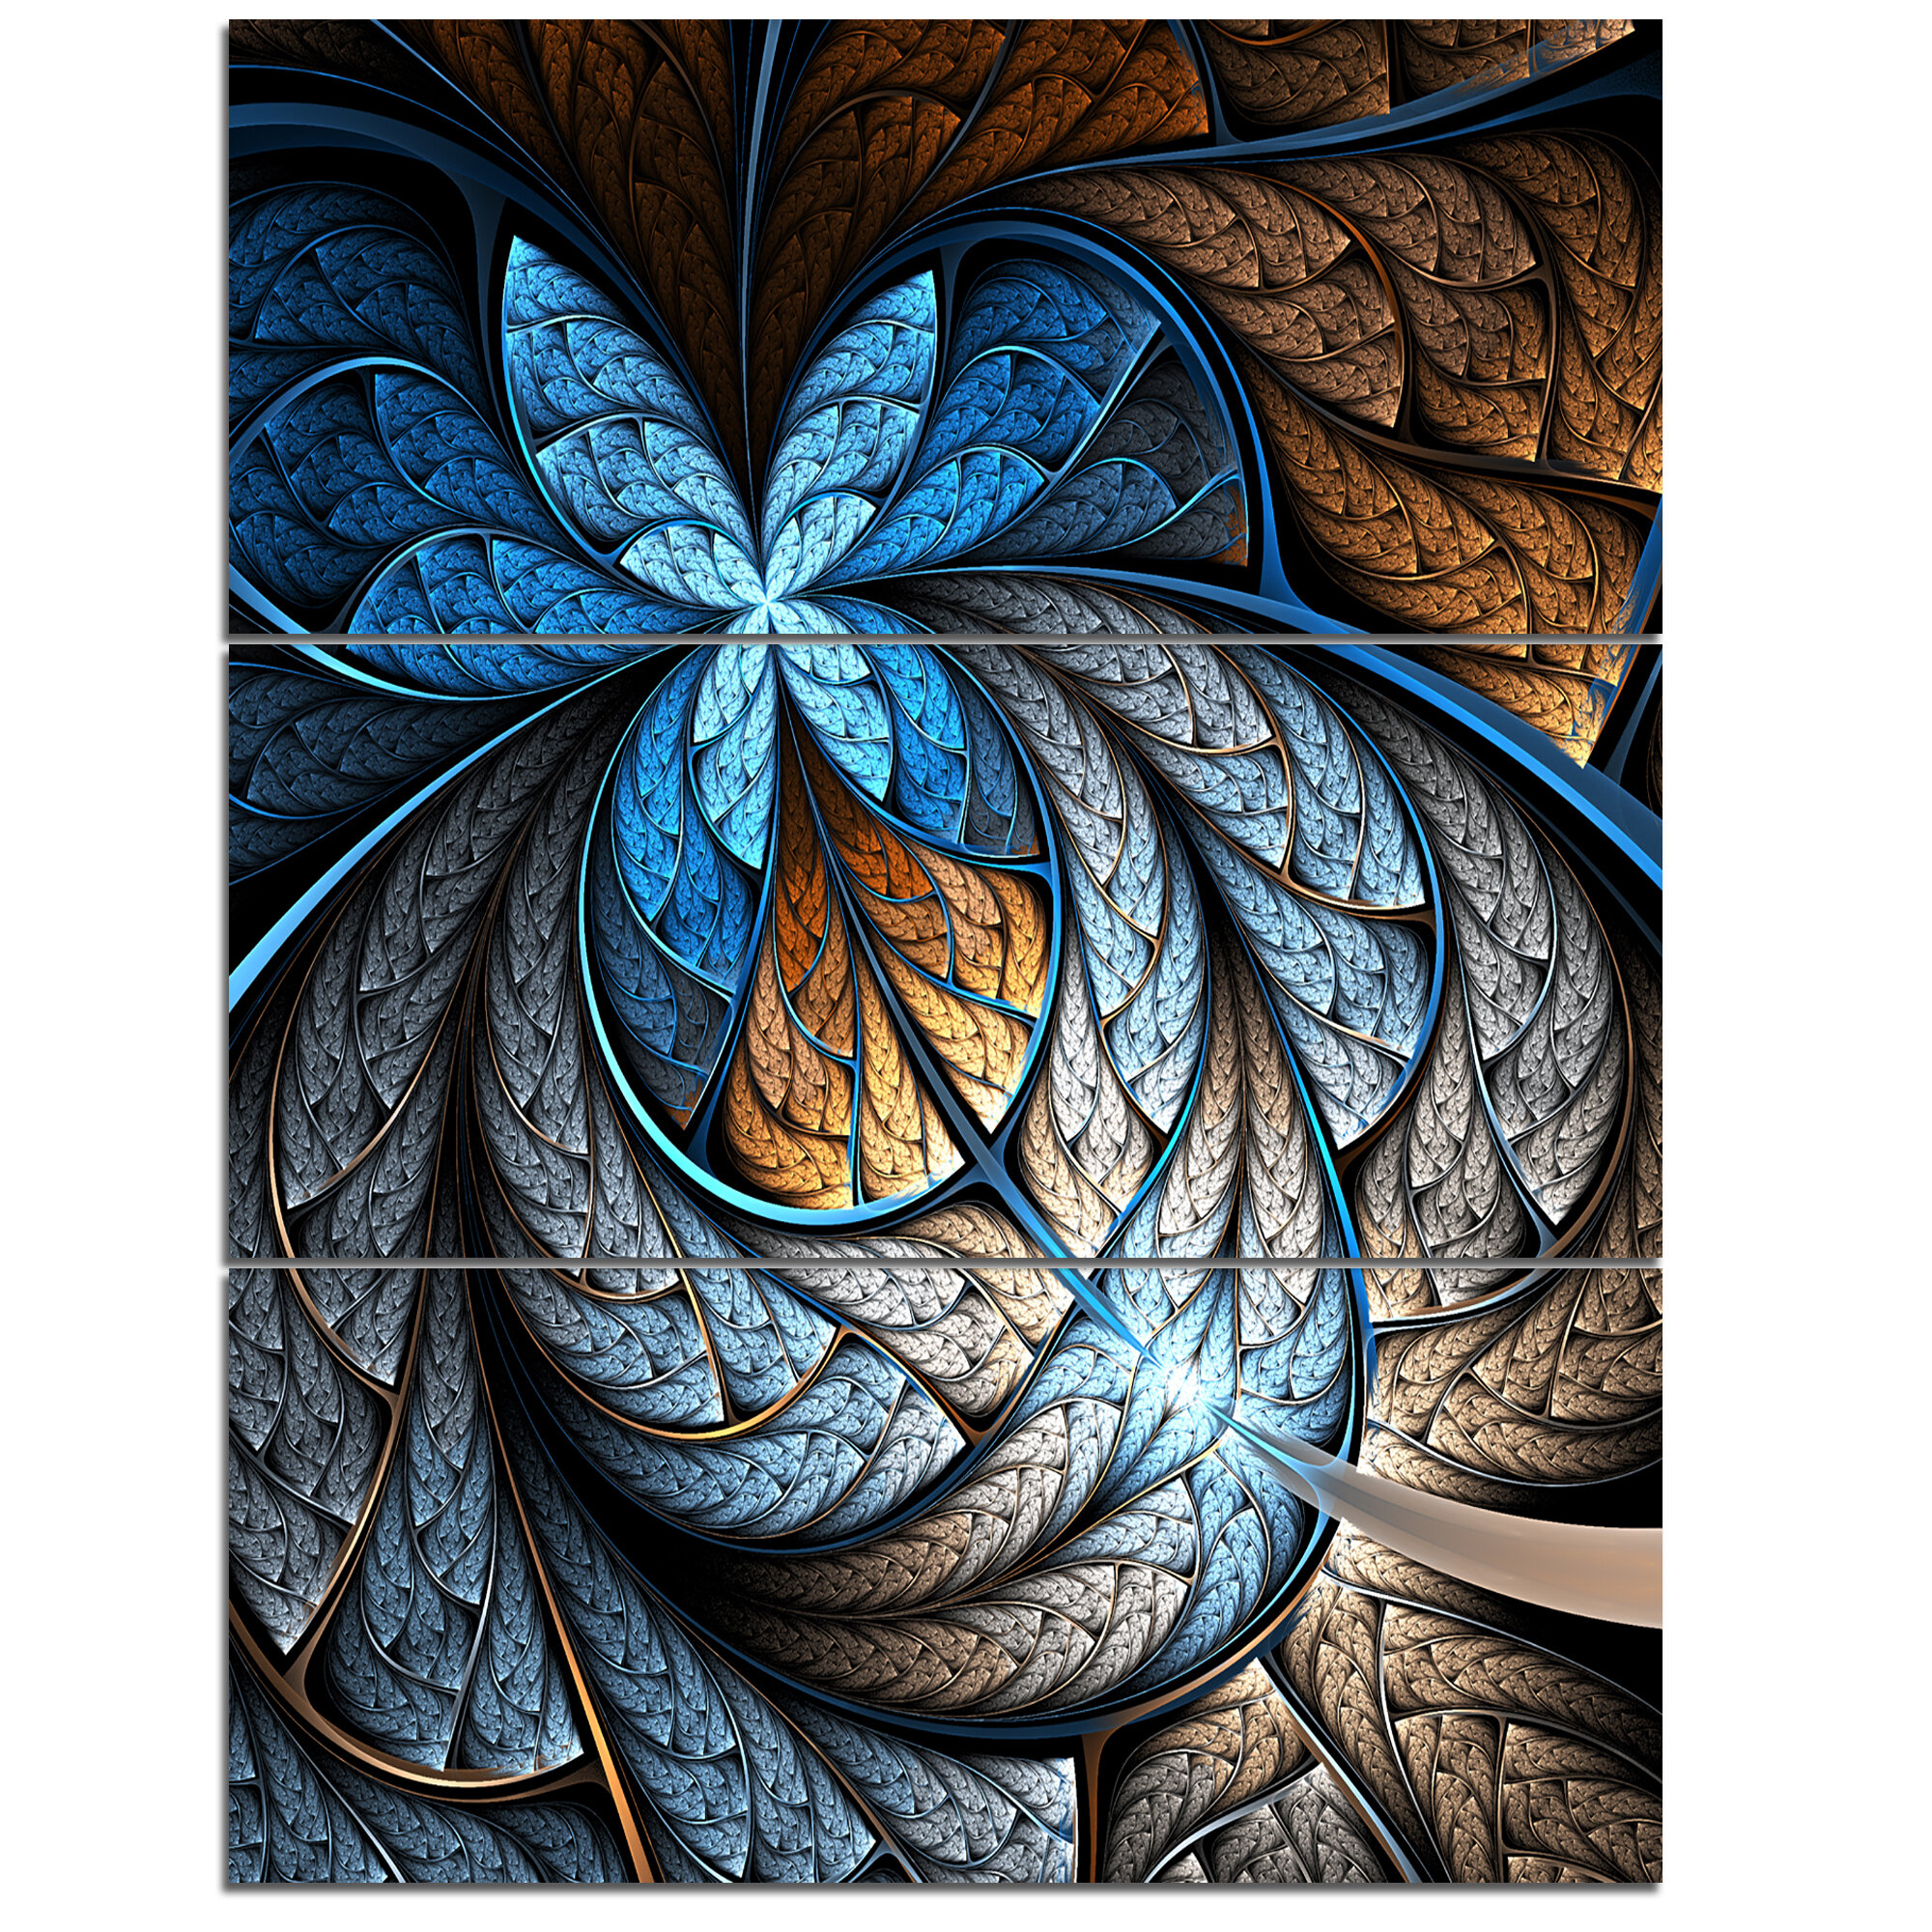 Designart Blue Brown Fractal Flower Pattern 3 Piece Graphic Art On Wrapped Canvas Set Wayfair